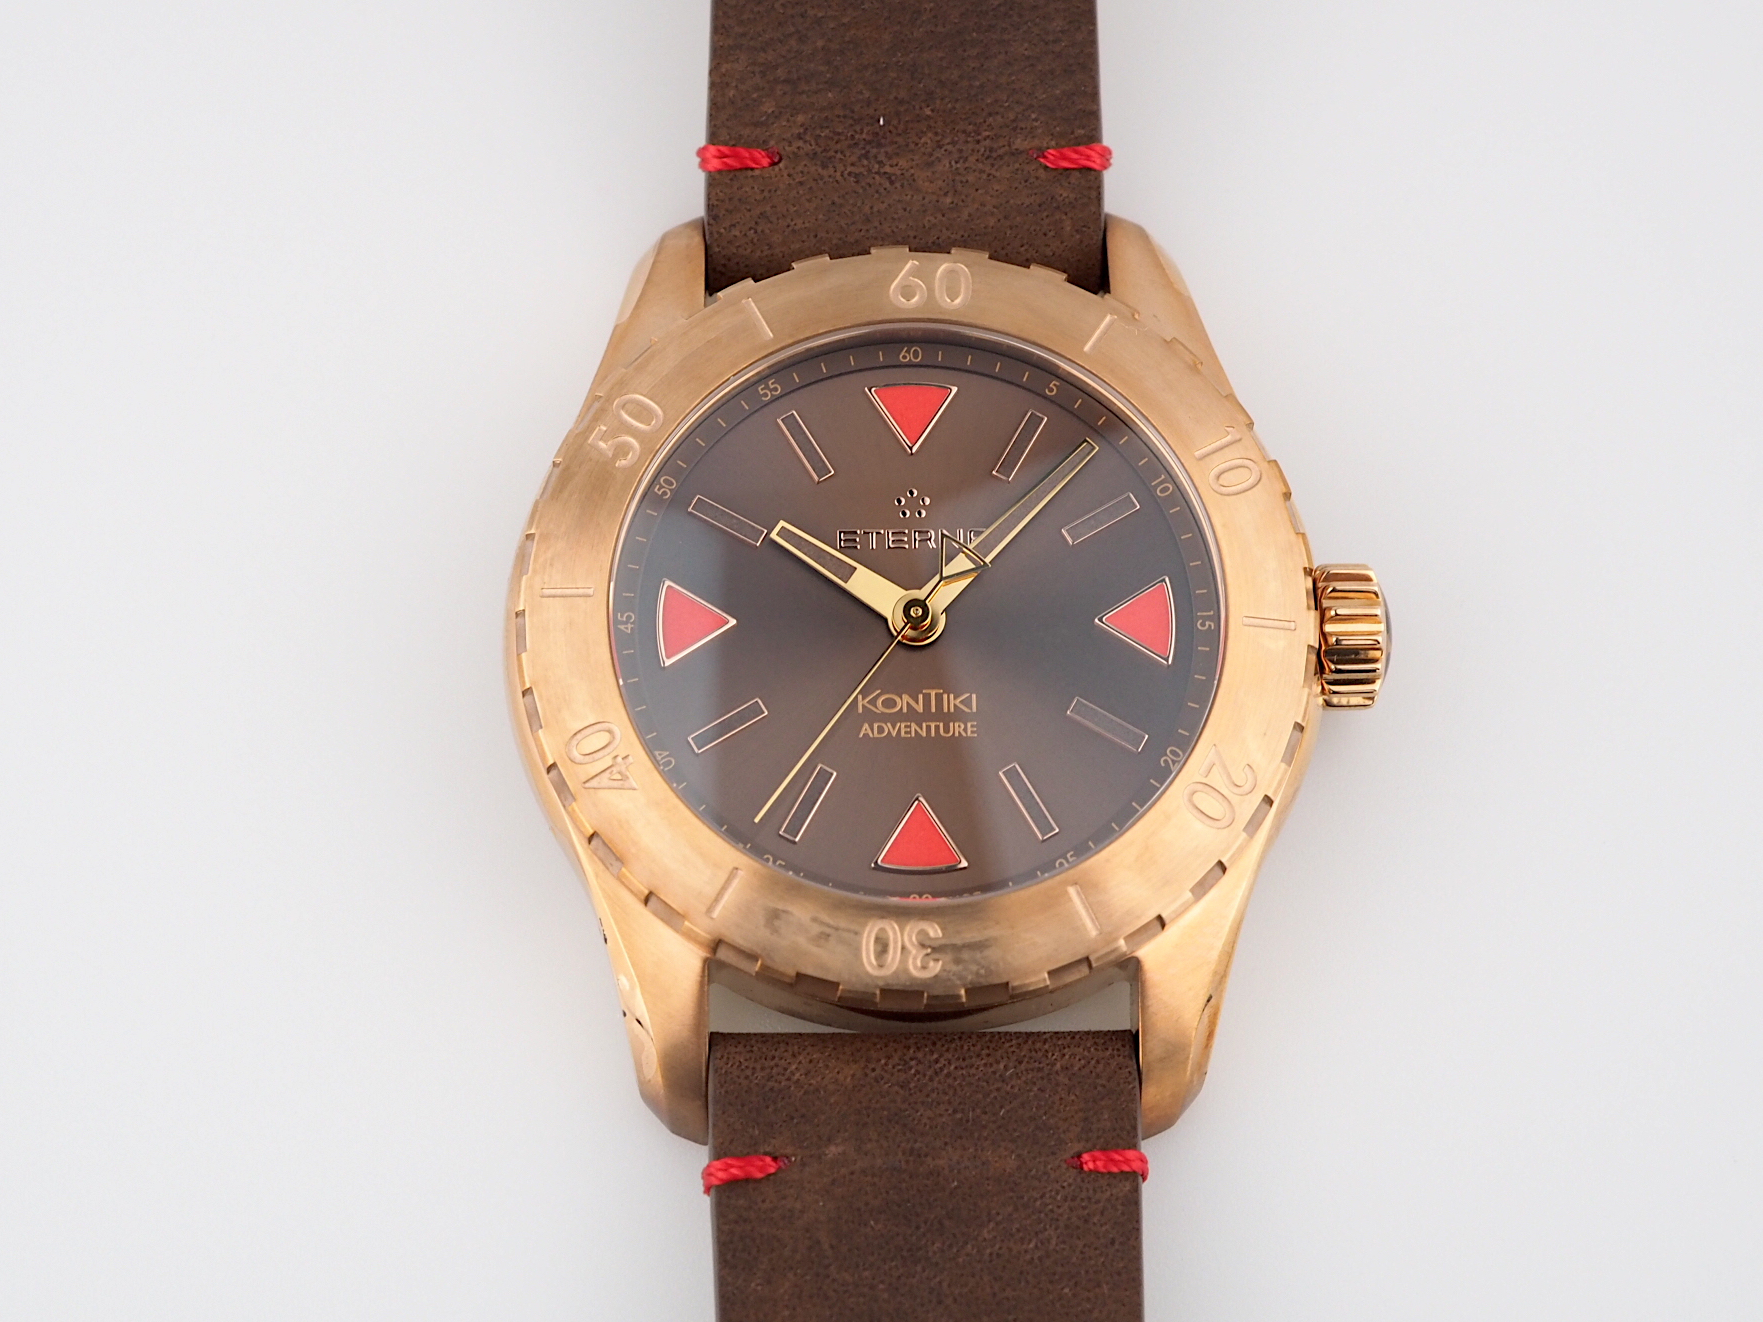 Eterna KonTiki Adventure Bronze